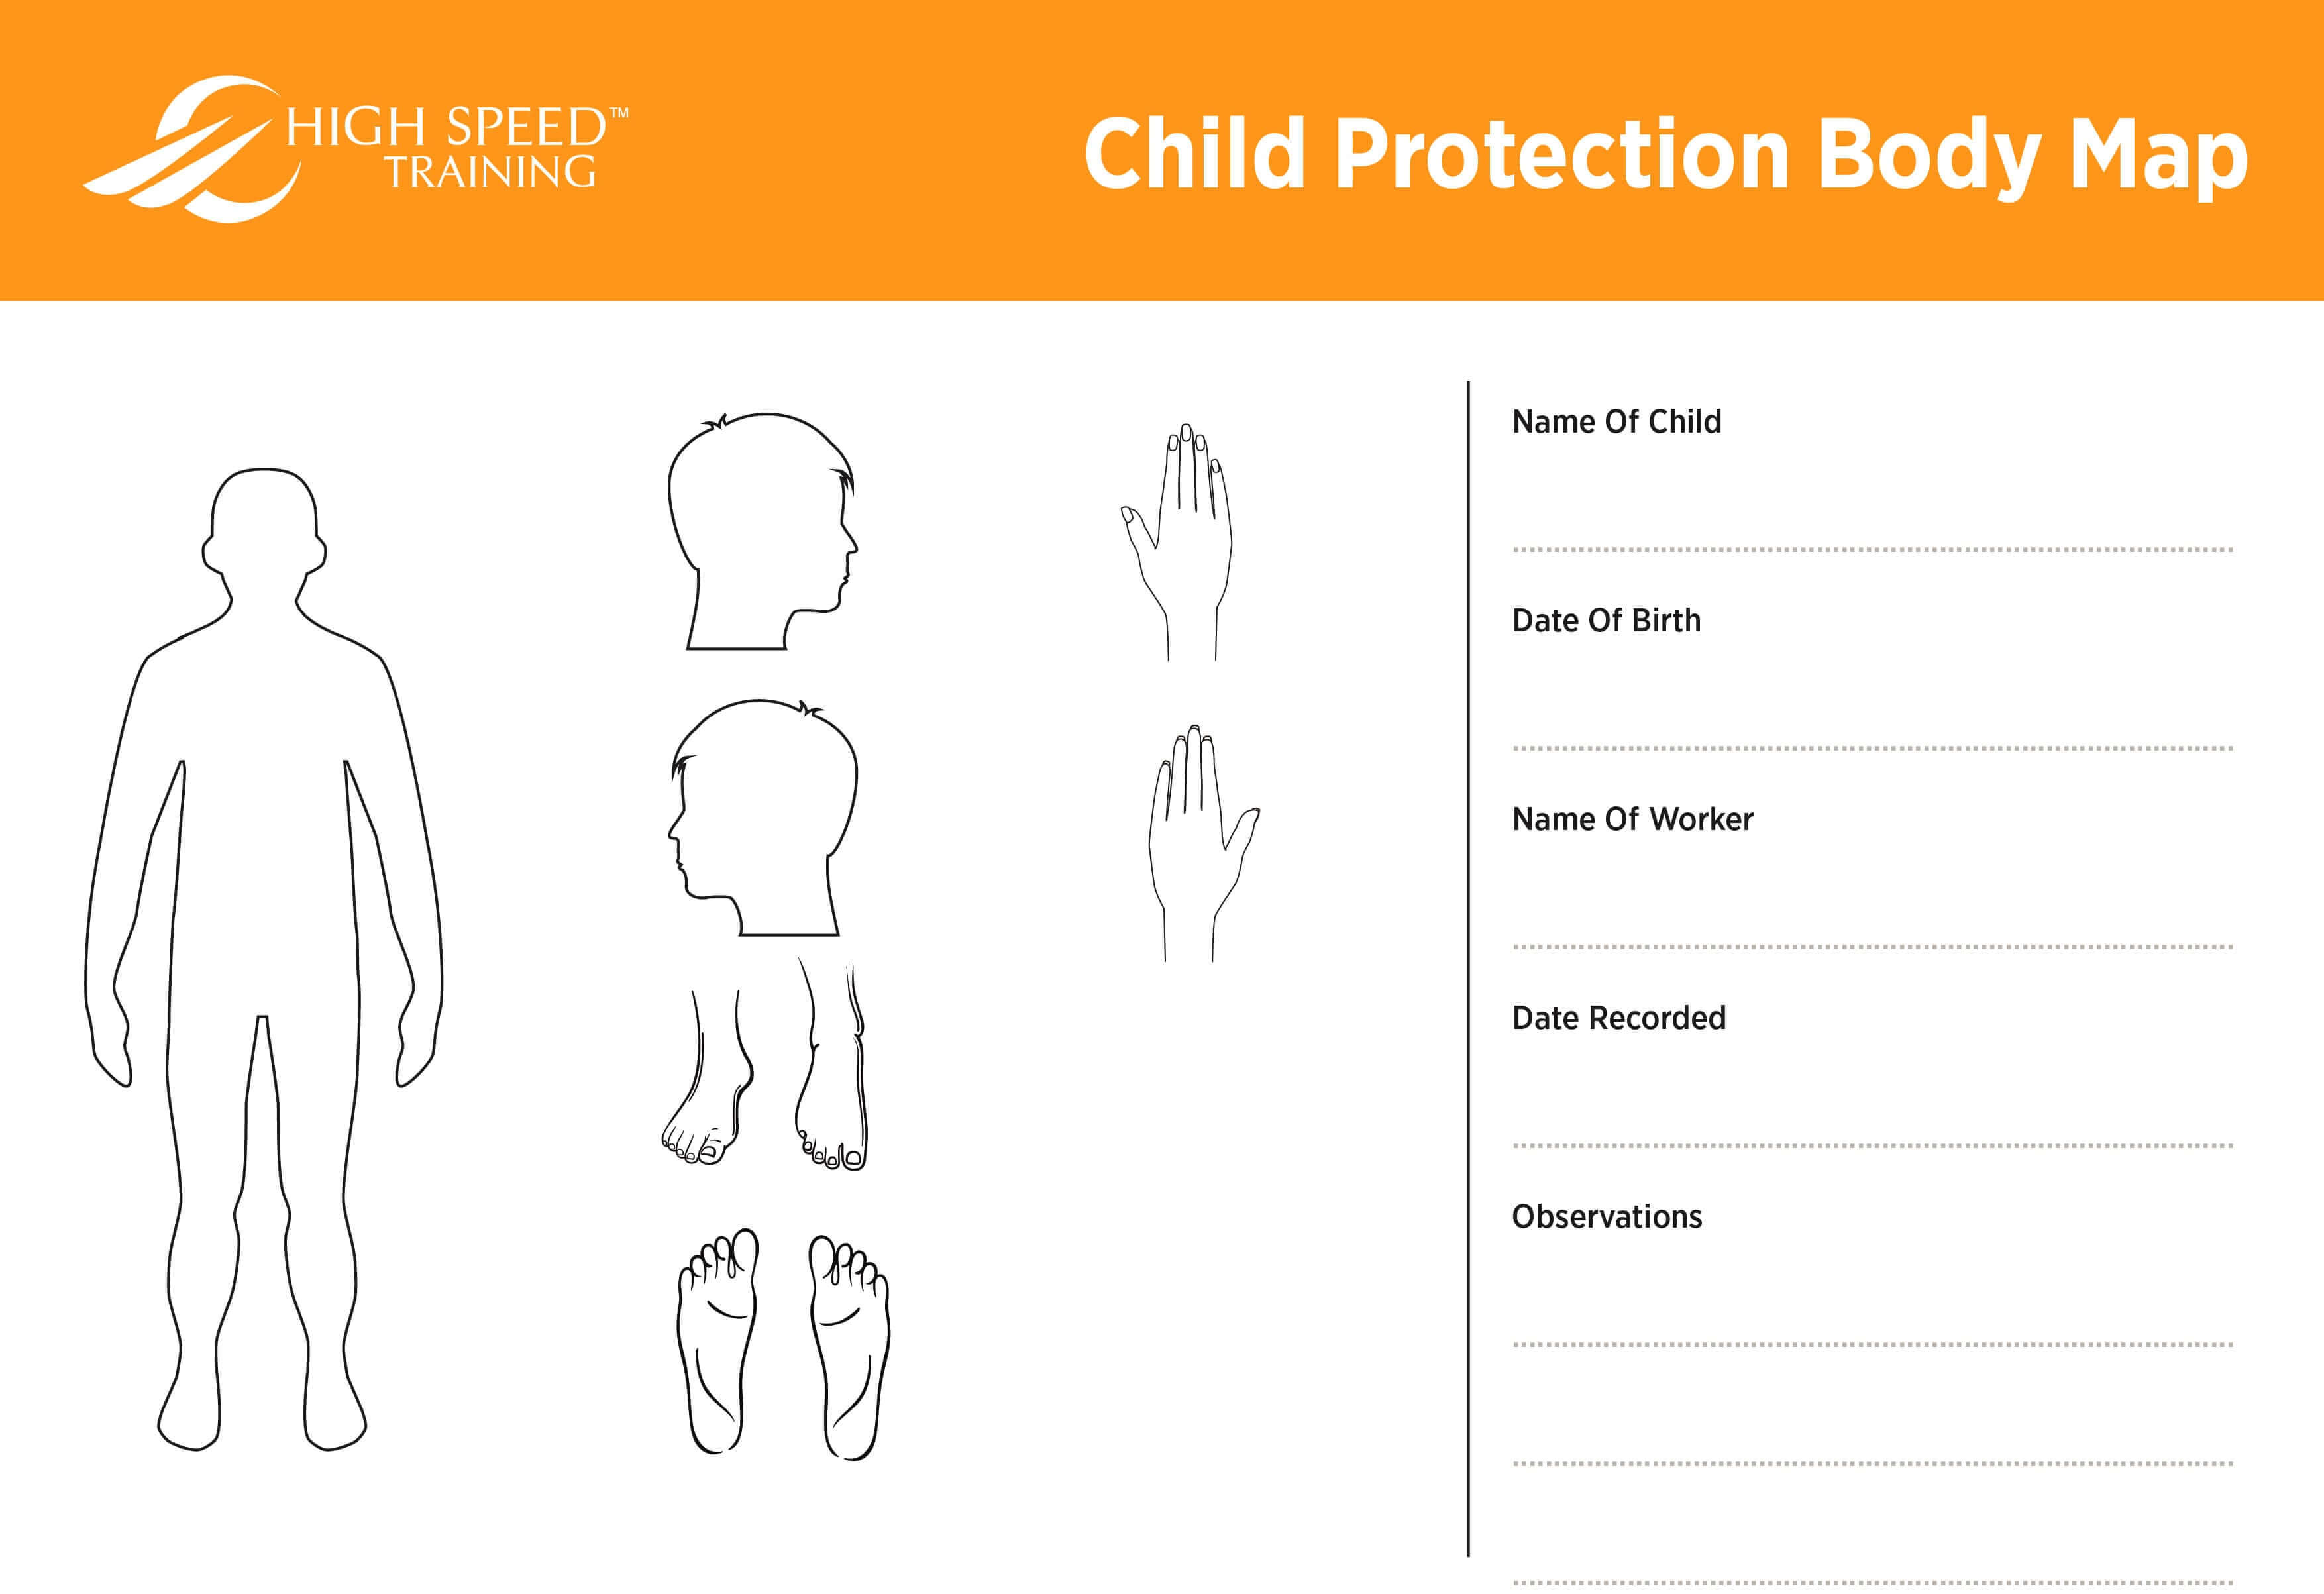 Child Protection Body Map Template | Safeguarding Advice intended for Blank Body Map Template